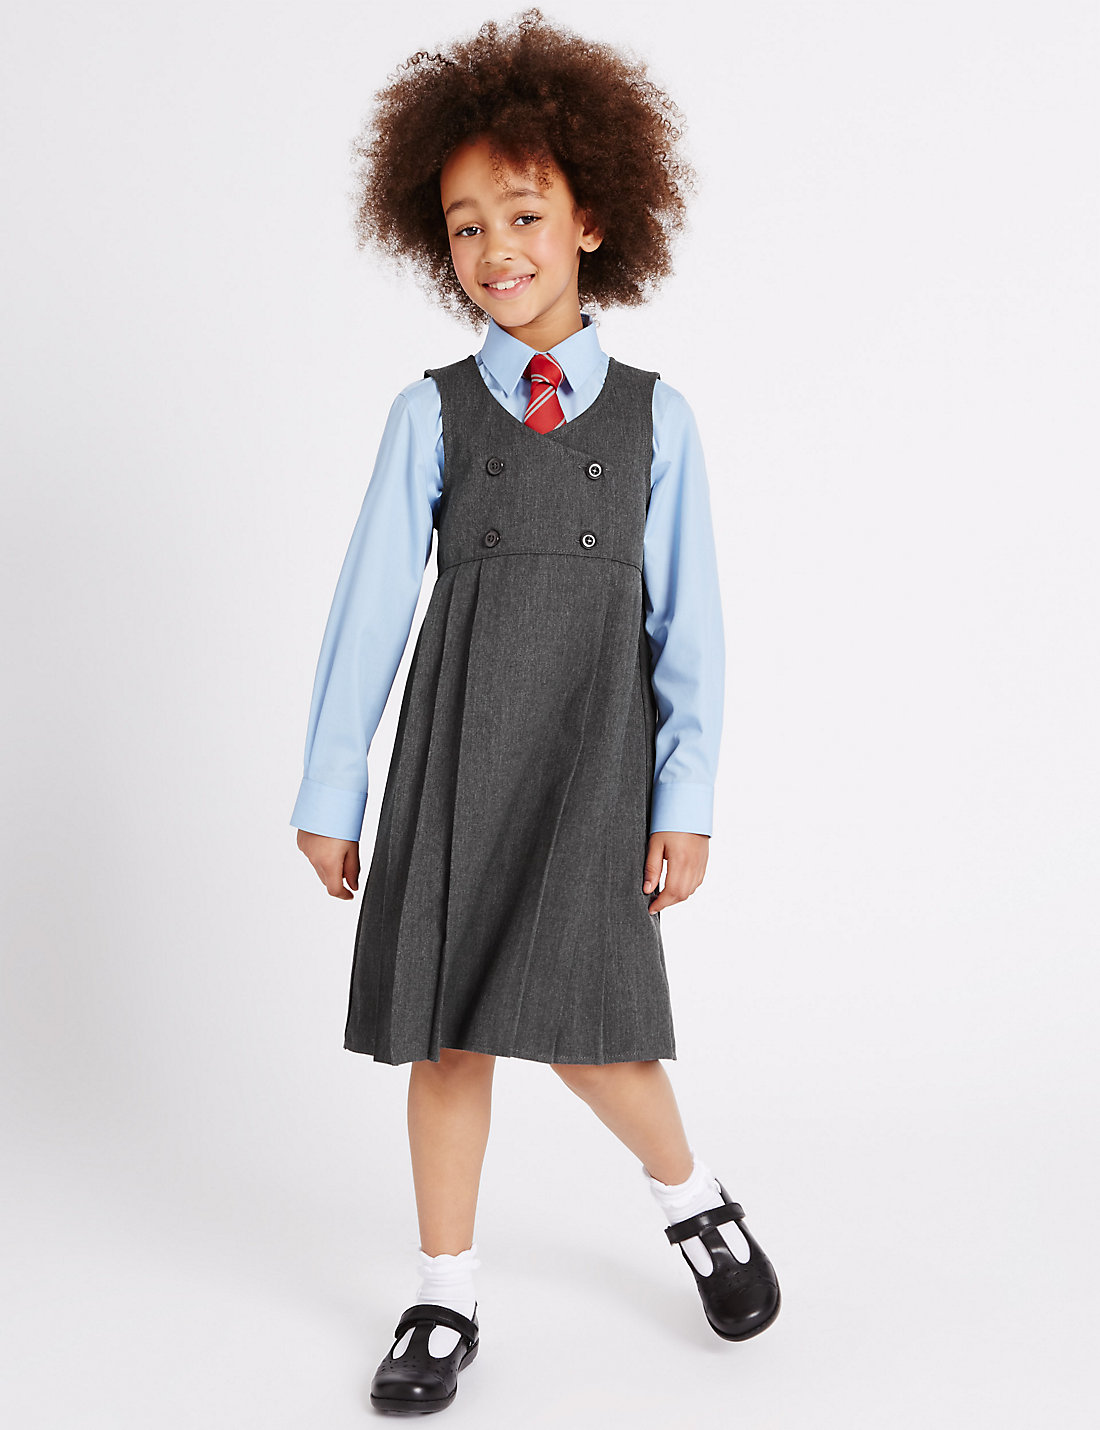 f96298846b Girls' Pinafore with Permanent Pleats – M & S Uniforms